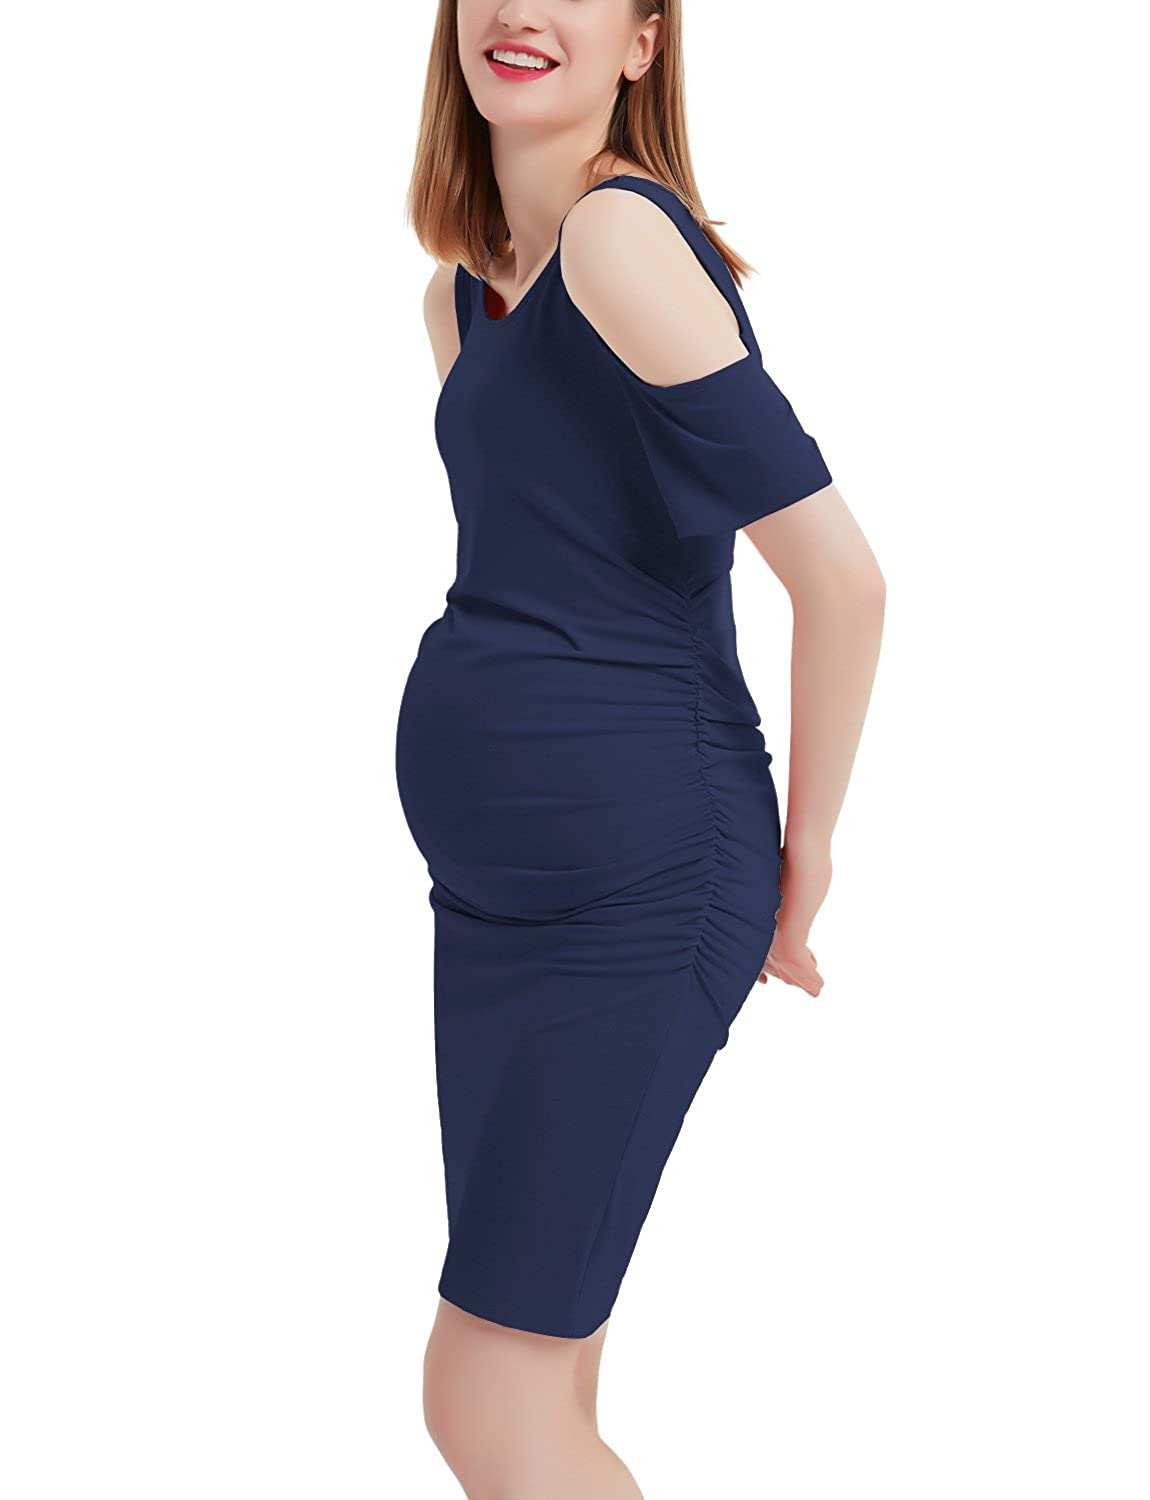 Navy bluee GINKANA Cold Shoulder Maternity Bodycon Dress Casual Ruched Side Knee Length Pregnancy Dress Clothes